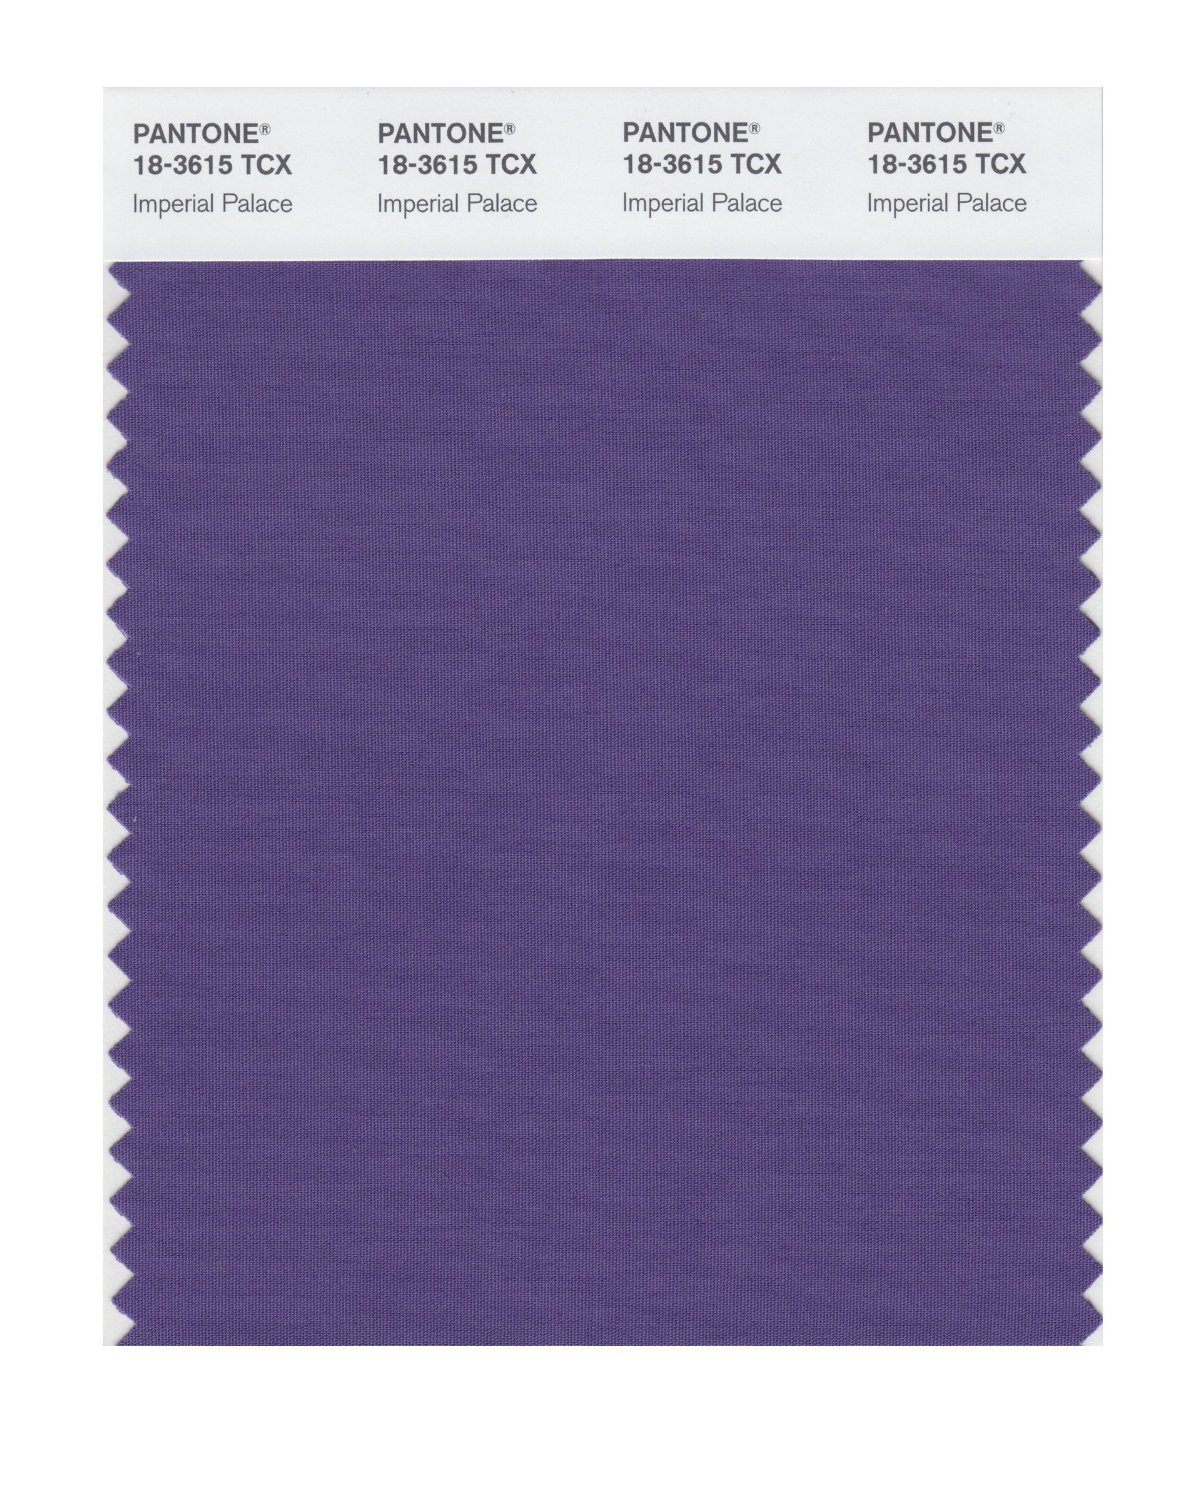 Pantone Smart Swatch 18-3615 Imperial Palace